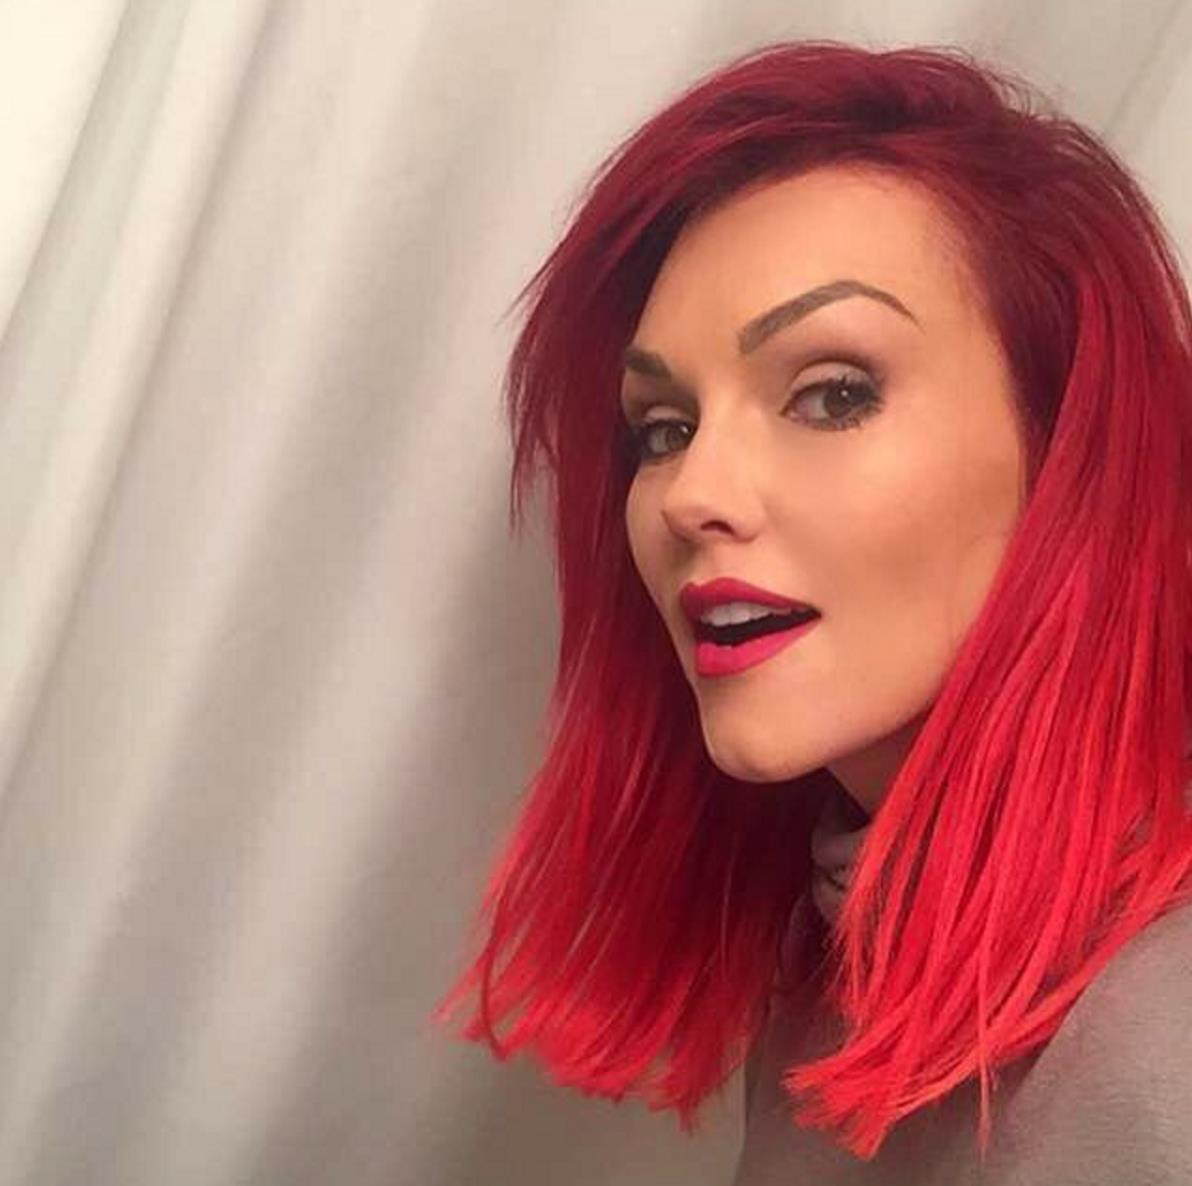 """Life's too short to have the same hair too long....I am in love with my new hair cut and ""red bré"" that @nikkimitchell20 gave me!""  Kandee Johnson, who posted this photo in March 2016."